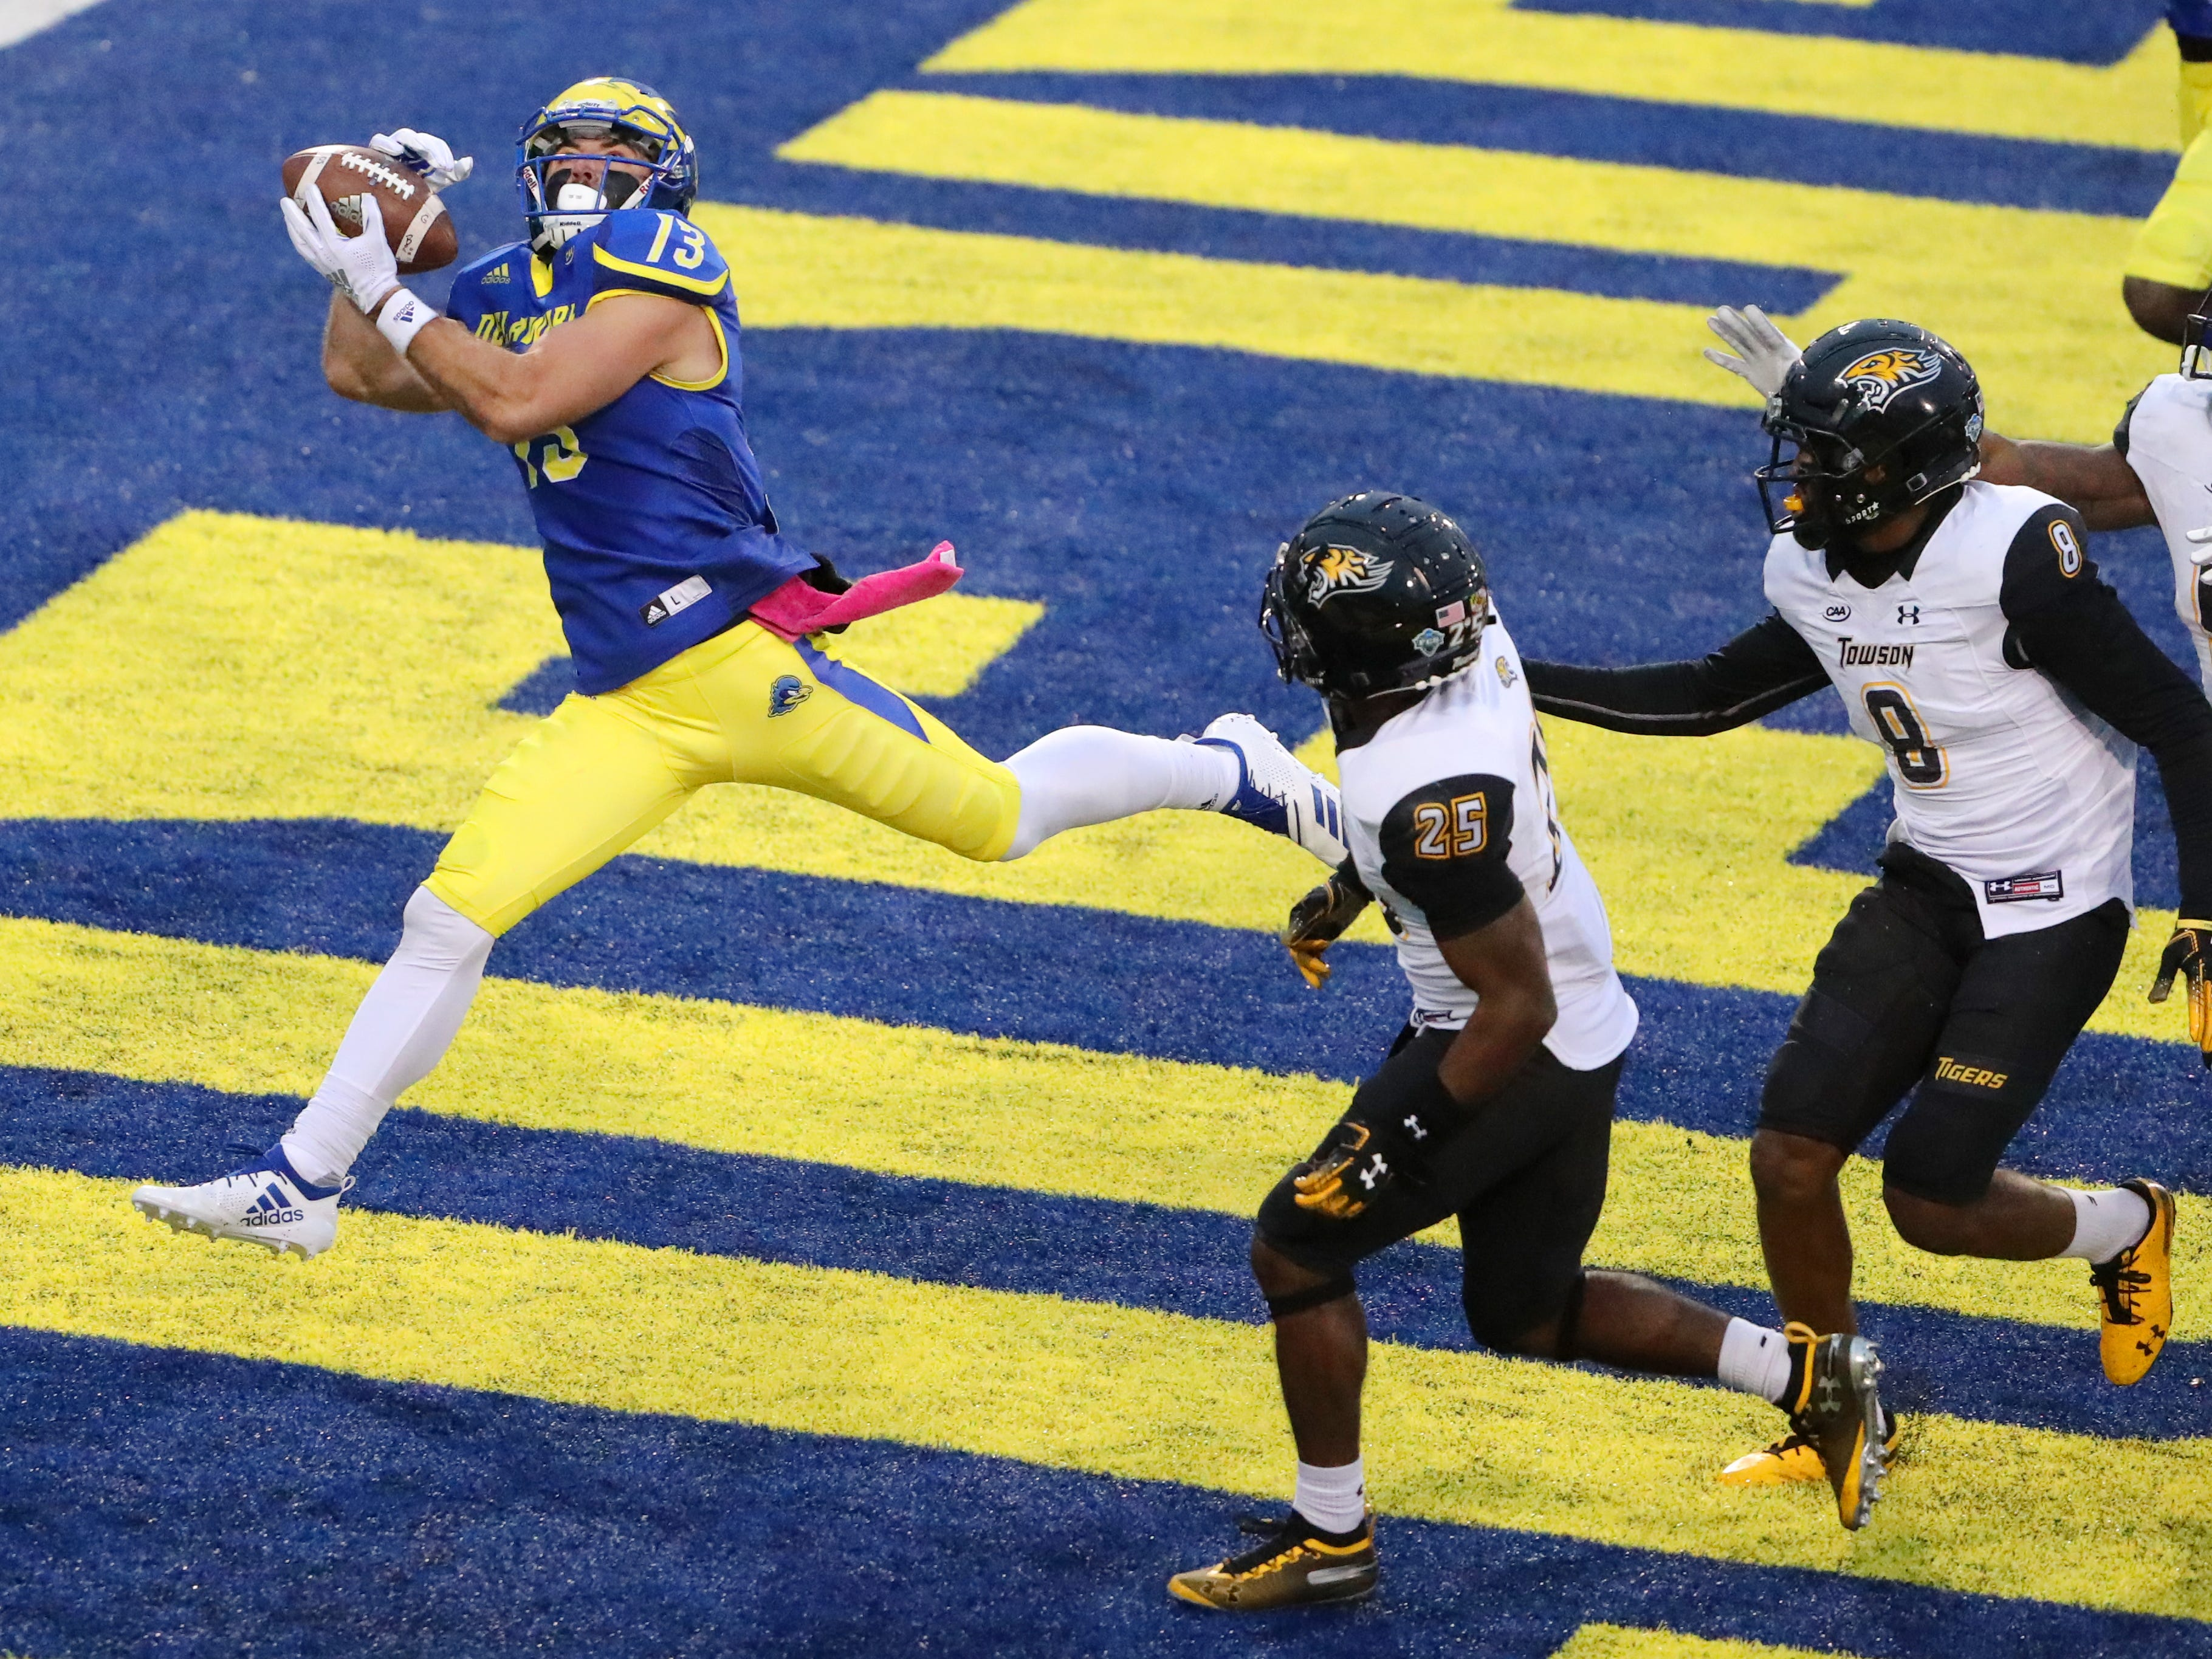 Delaware pulls off upset win against No. 10 Towson, earns share of CAA lead